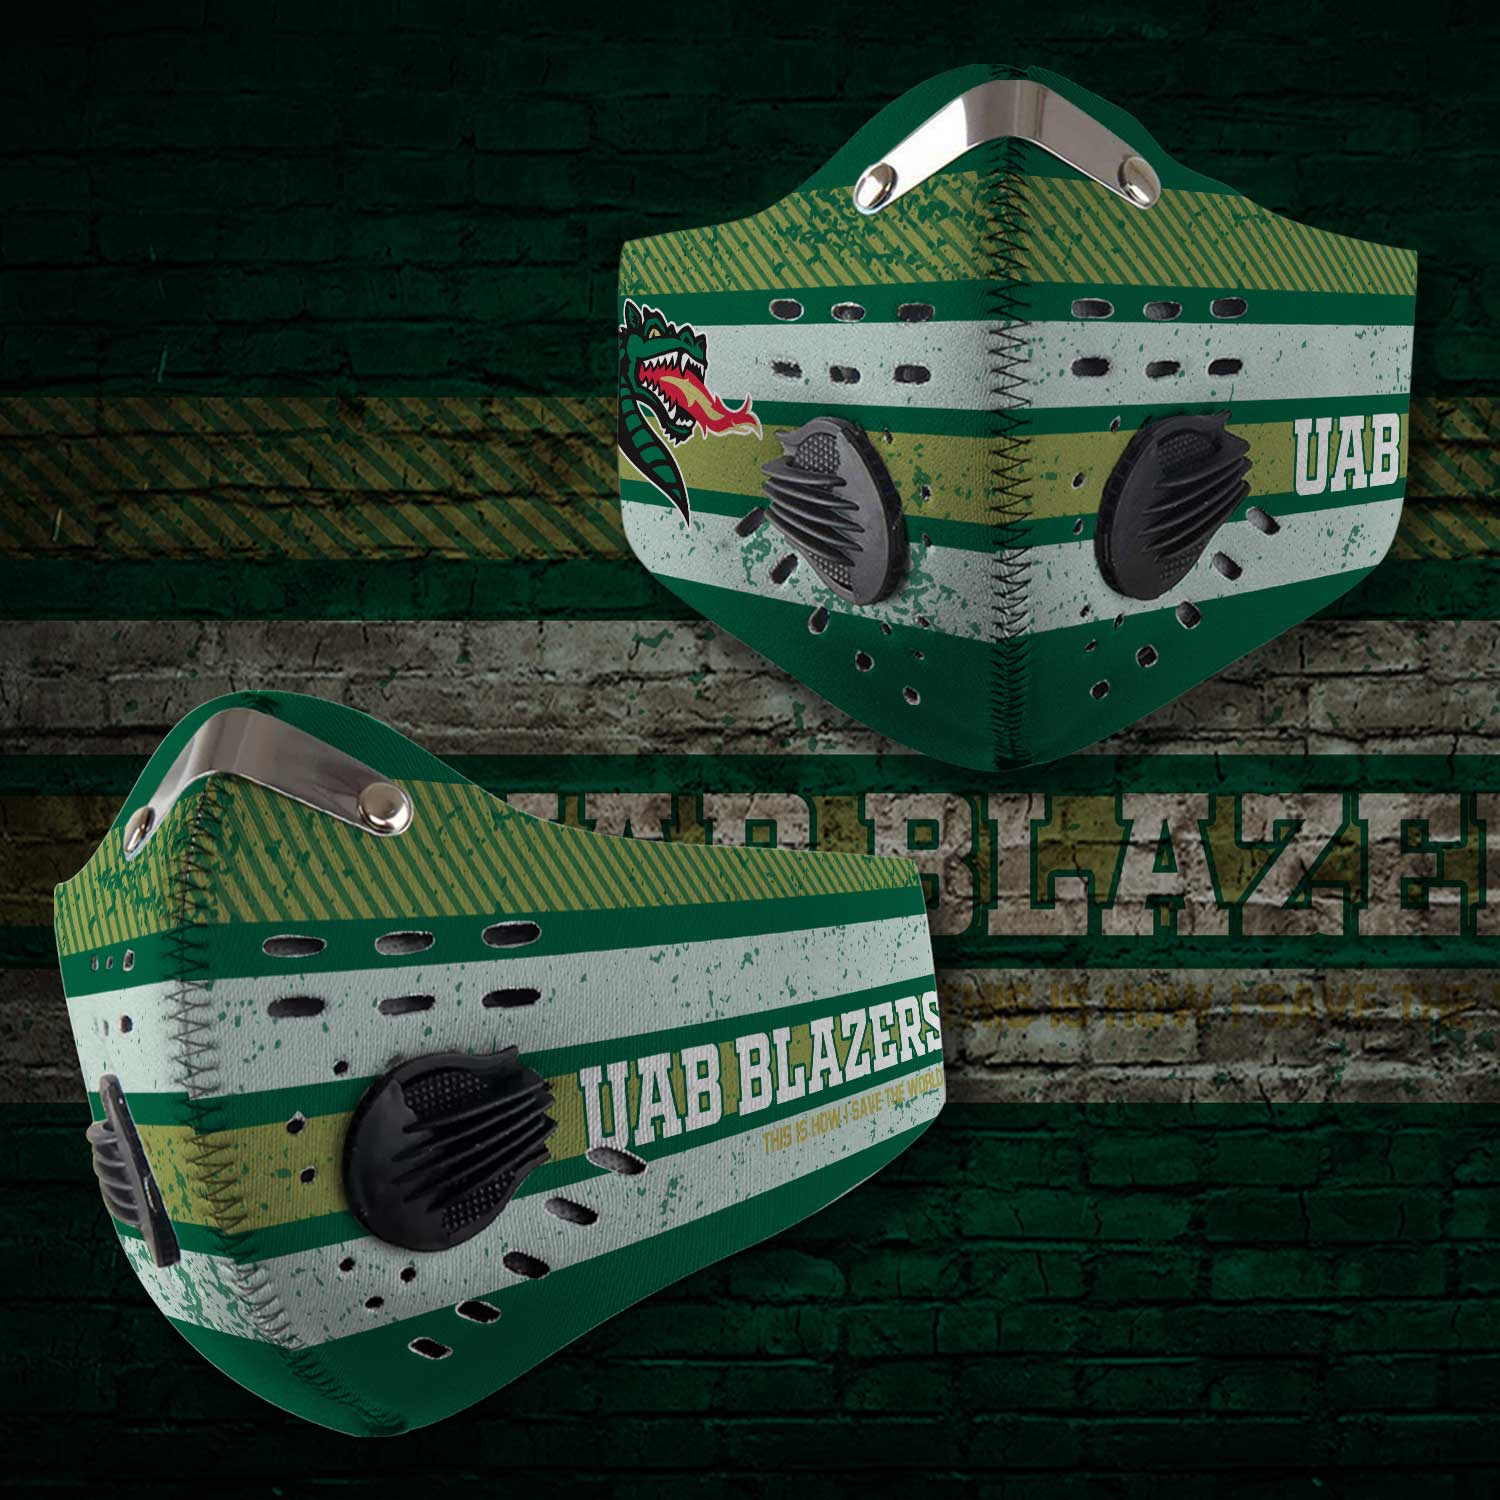 Uab blazers this is how i save the world carbon filter face mask 1